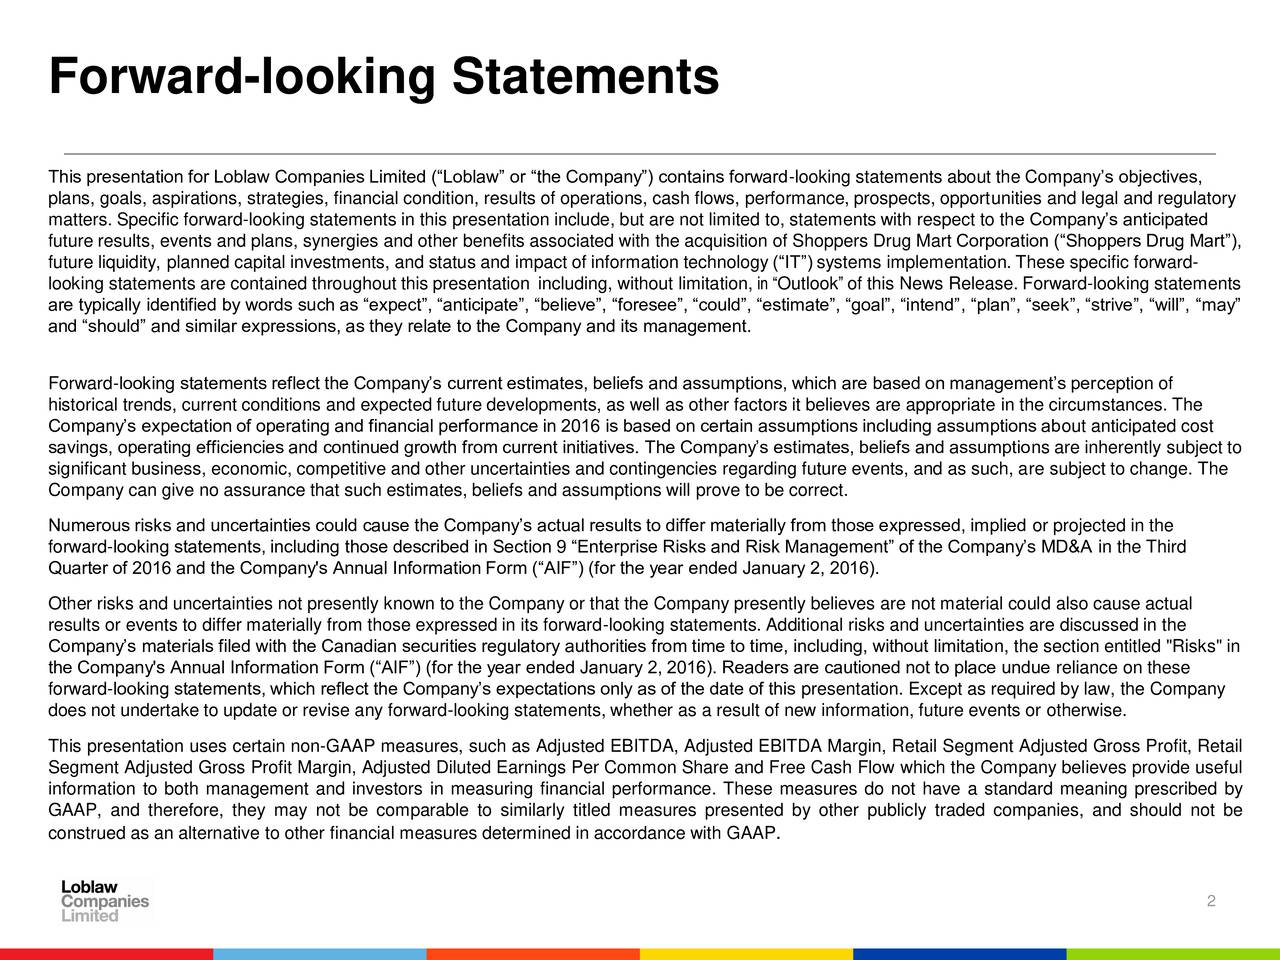 This presentation for Loblaw Companies Limited (Loblaw or the Company) contains forward-looking statements about the Companys objectives, plans, goals, aspirations, strategies, financial condition, results of operations, cash flows, performance, prospects, opportunities and legal and regulatory matters. Specific forward-looking statements in this presentation include, but are not limited to, statements with respect to the Companys anticipated future results, events and plans, synergies and other benefits associated with the acquisition of Shoppers Drug Mart Corporation (Shoppers Drug Mart), future liquidity, planned capital investments, and status and impact of information technology (IT) systems implementation. These specific forward- looking statements are contained throughout this presentation including, without limitation, in Outlook of this News Release. Forward-looking statements are typically identified by words such as expect, anticipate, believe, foresee, could, estimate, goal, intend, plan, seek, strive, will, may and should and similar expressions, as they relate to the Company and its management. Forward-looking statements reflect the Companys current estimates, beliefs and assumptions, which are based on managements perception of historical trends, current conditions and expected future developments, as well as other factors it believes are appropriate in the circumstances. The Companys expectation of operating and financial performance in 2016 is based on certain assumptions including assumptions about anticipated cost savings, operating efficiencies and continued growth from current initiatives. The Companys estimates, beliefs and assumptions are inherently subject to significant business, economic, competitive and other uncertainties and contingencies regarding future events, and as such, are subject to change. The Company can give no assurance that such estimates, beliefs and assumptions will prove to be correct. Numerous risks and uncertainties cou